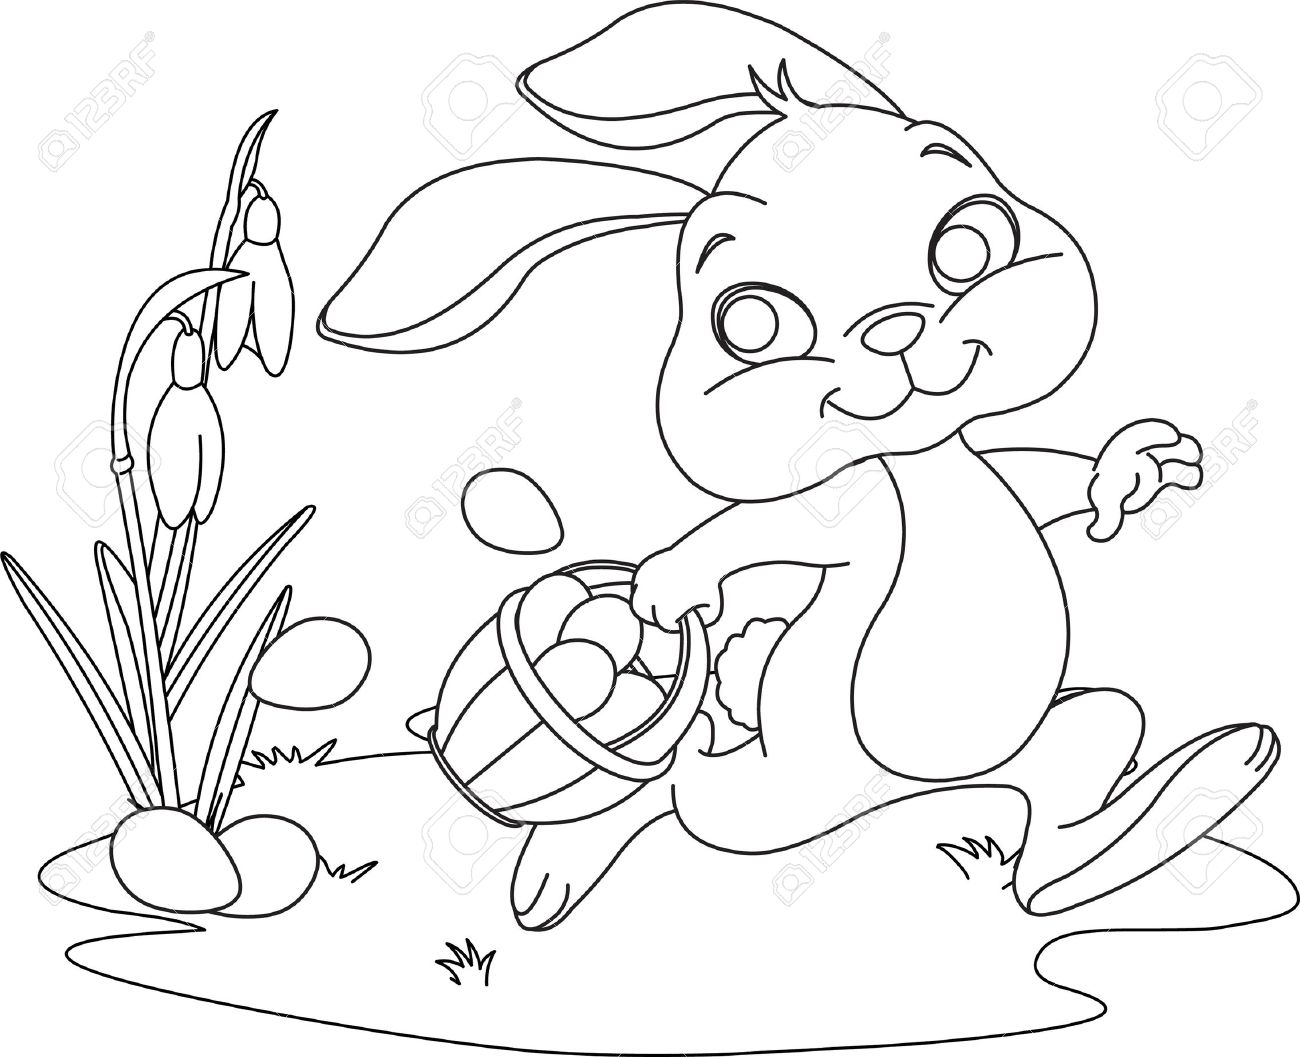 Easter bunny ears coloring pages download and print for free for Easter coloring pages for boys